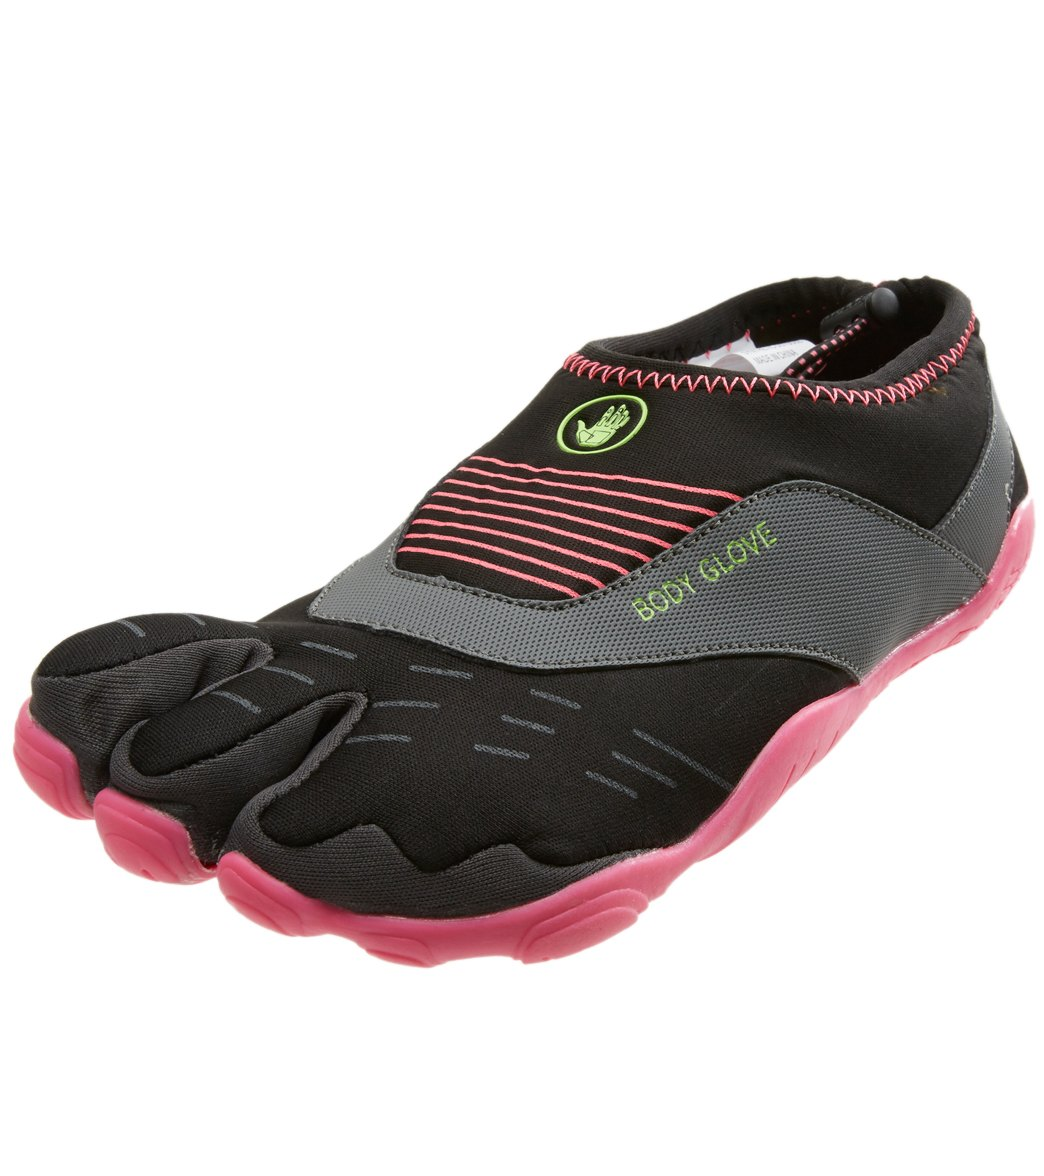 6261388f032b Body Glove Women s 3T Barefoot Cinch Water Shoe at SwimOutlet.com